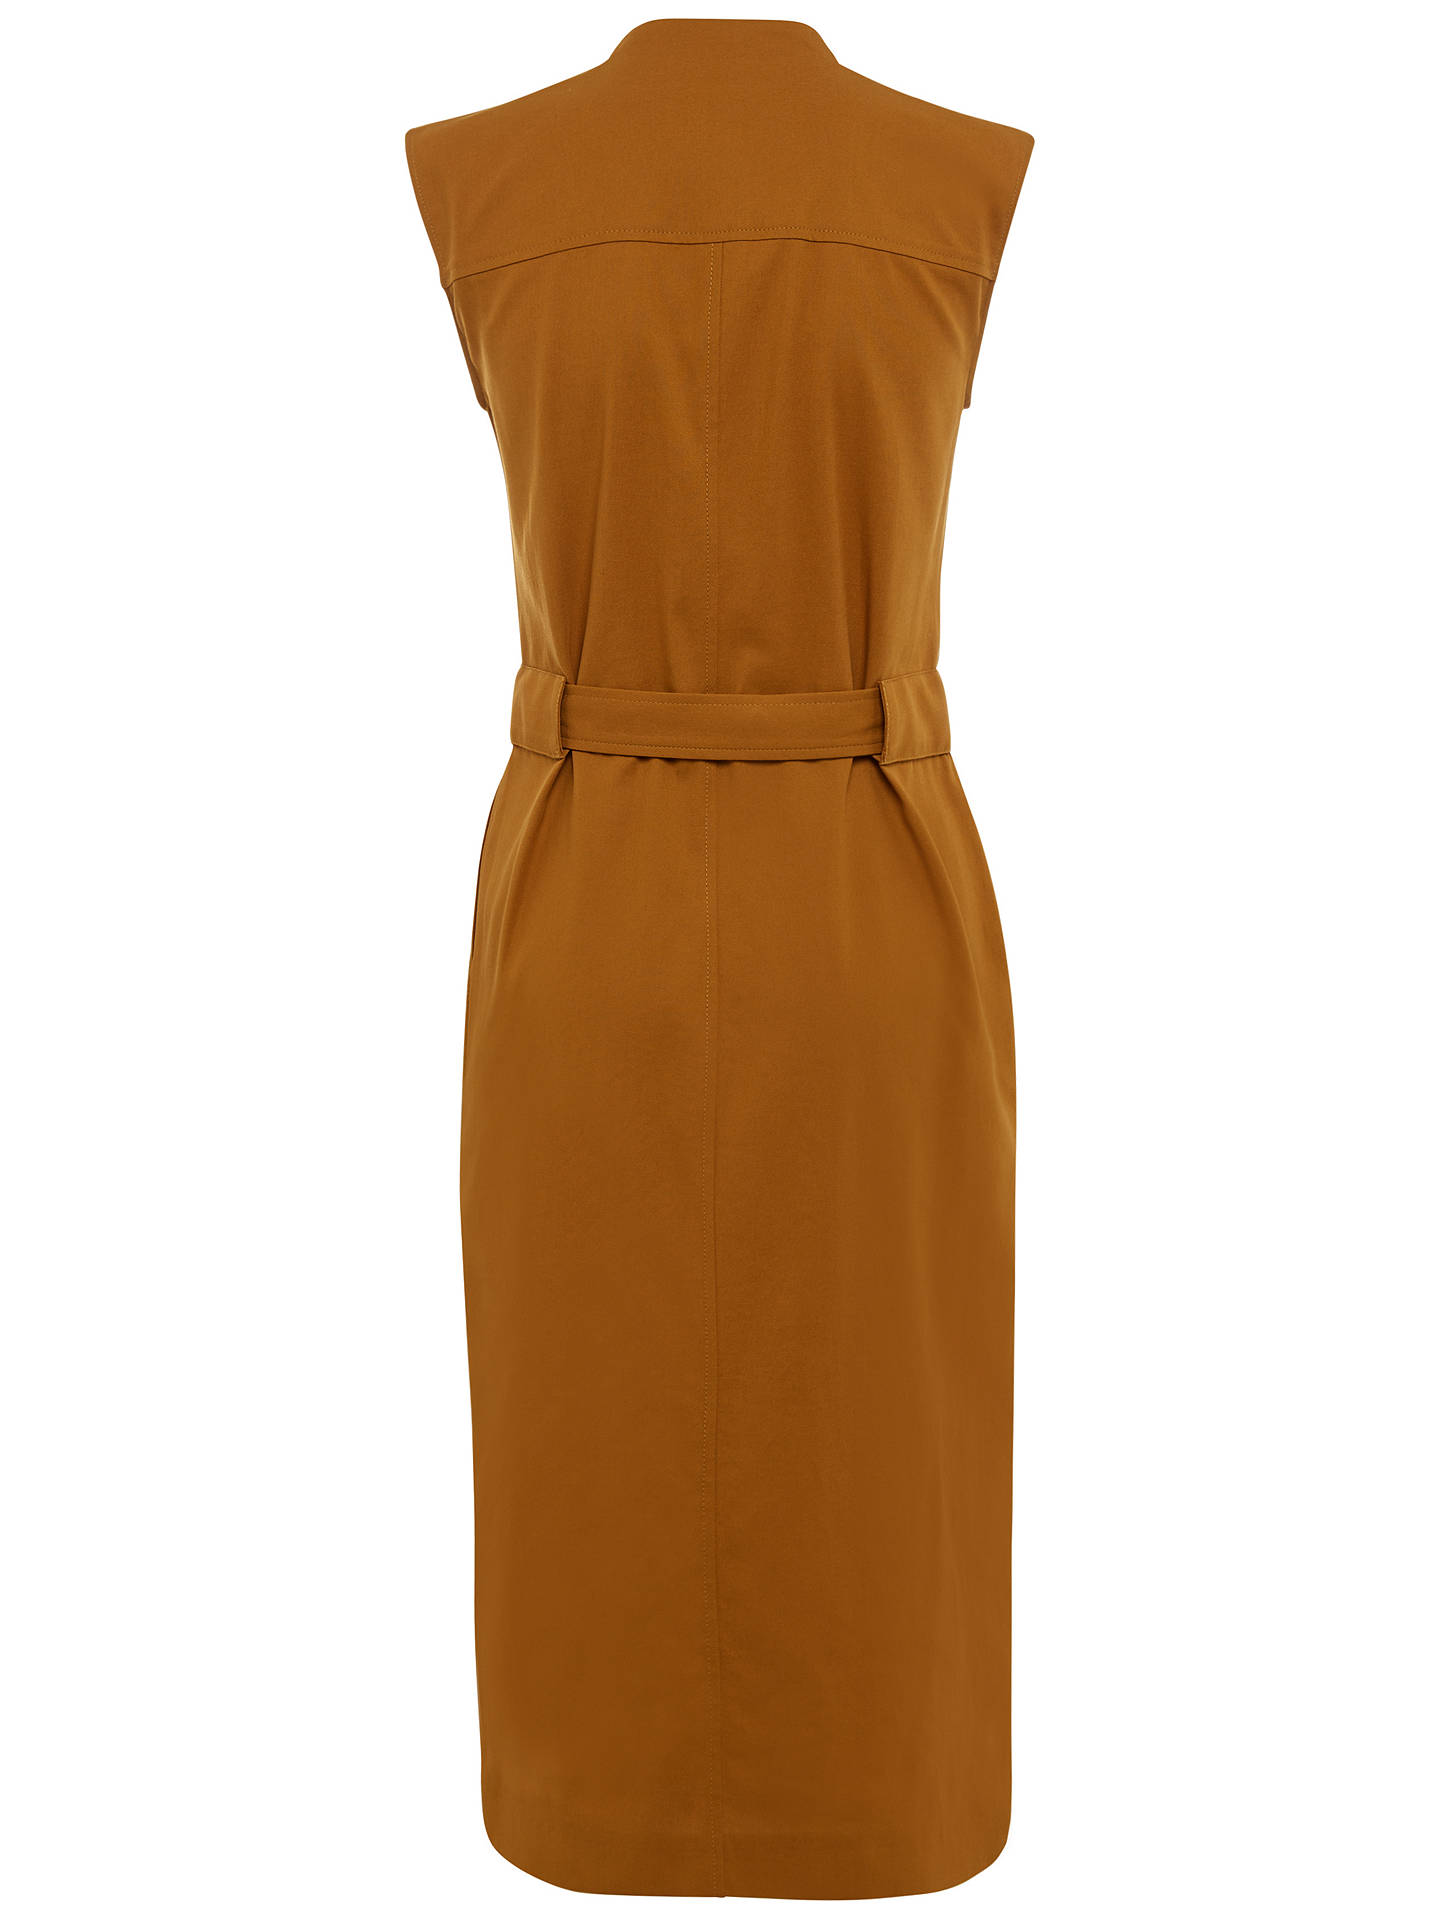 Jaeger Casual Belted Cotton Dress, Bronze at John Lewis